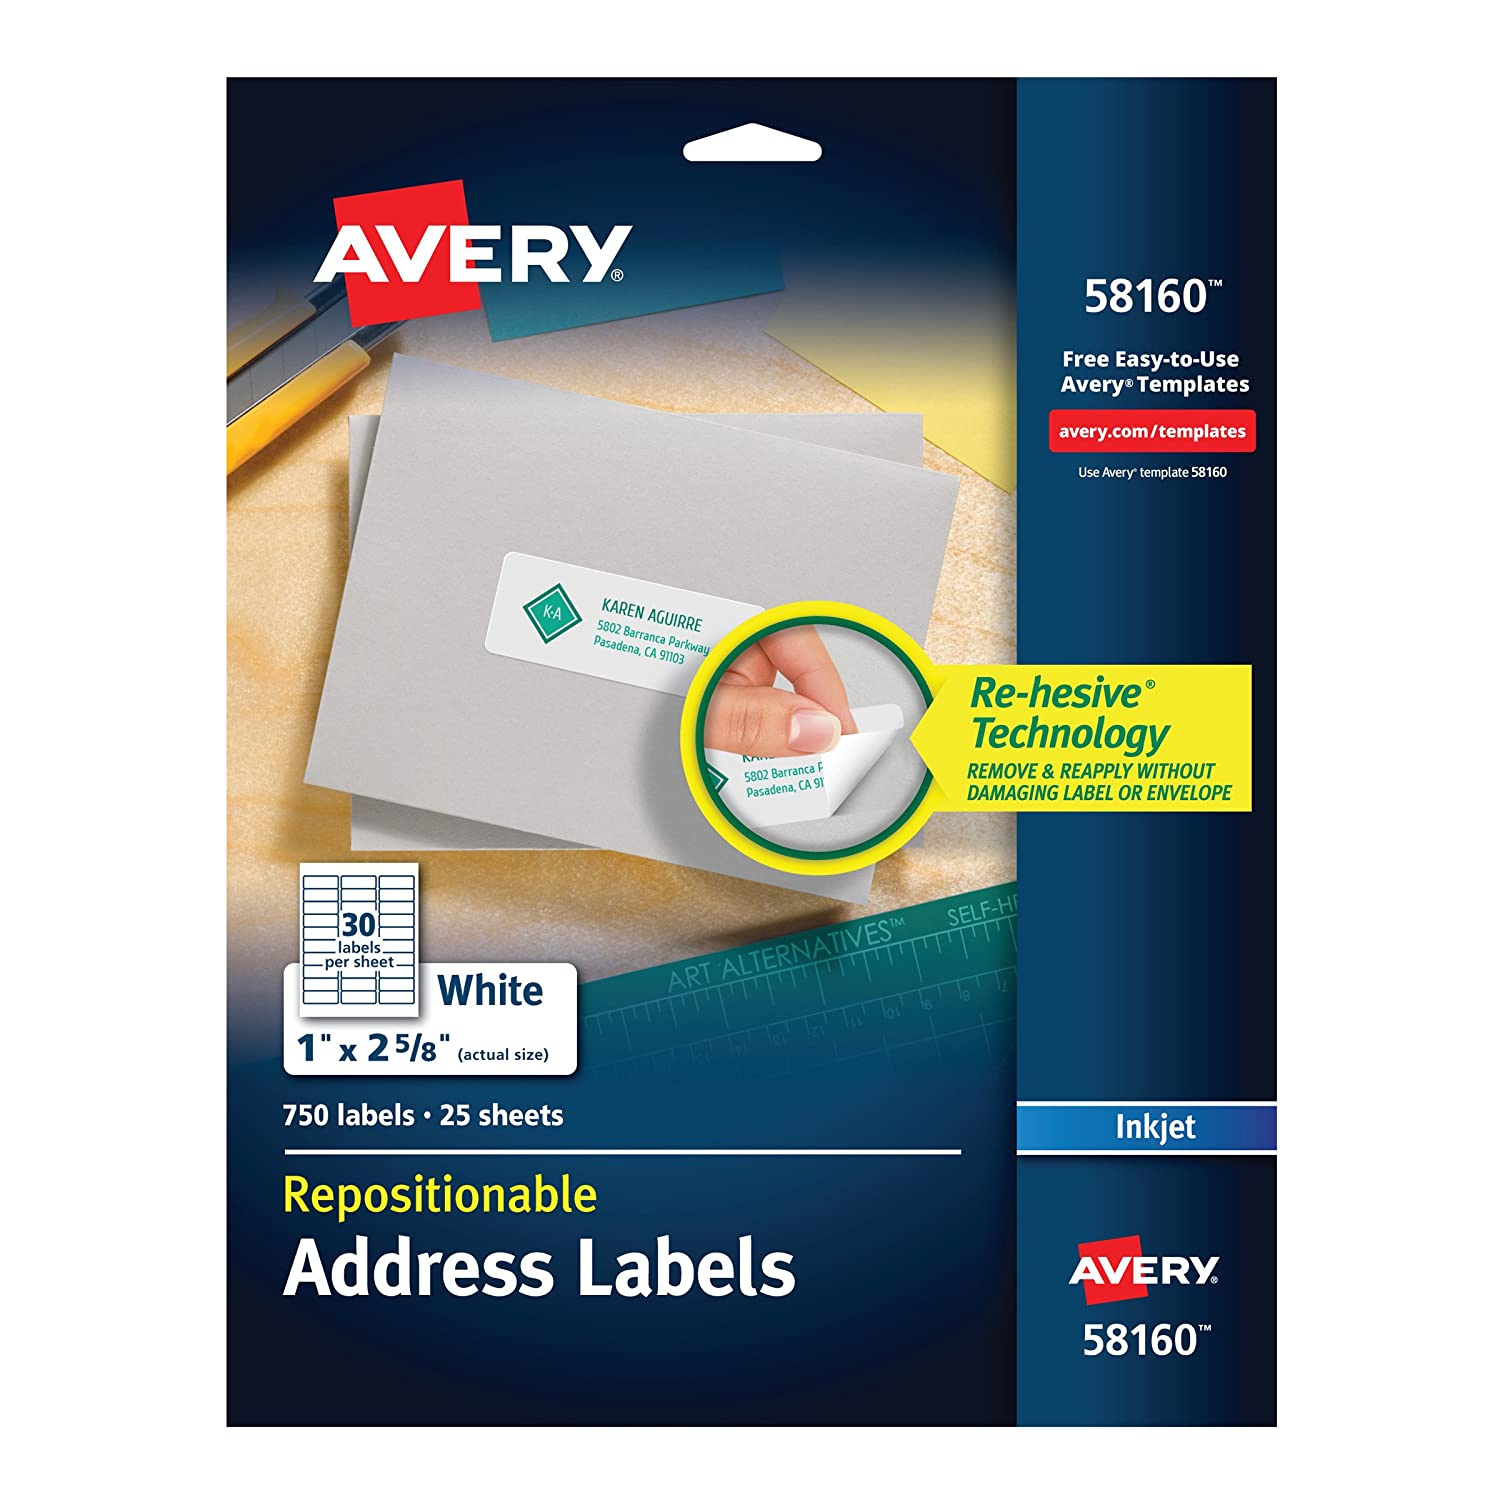 amazoncom avery repositionable address labels for inkjet printers 1 x 2 58 pack of 750 58160 office products